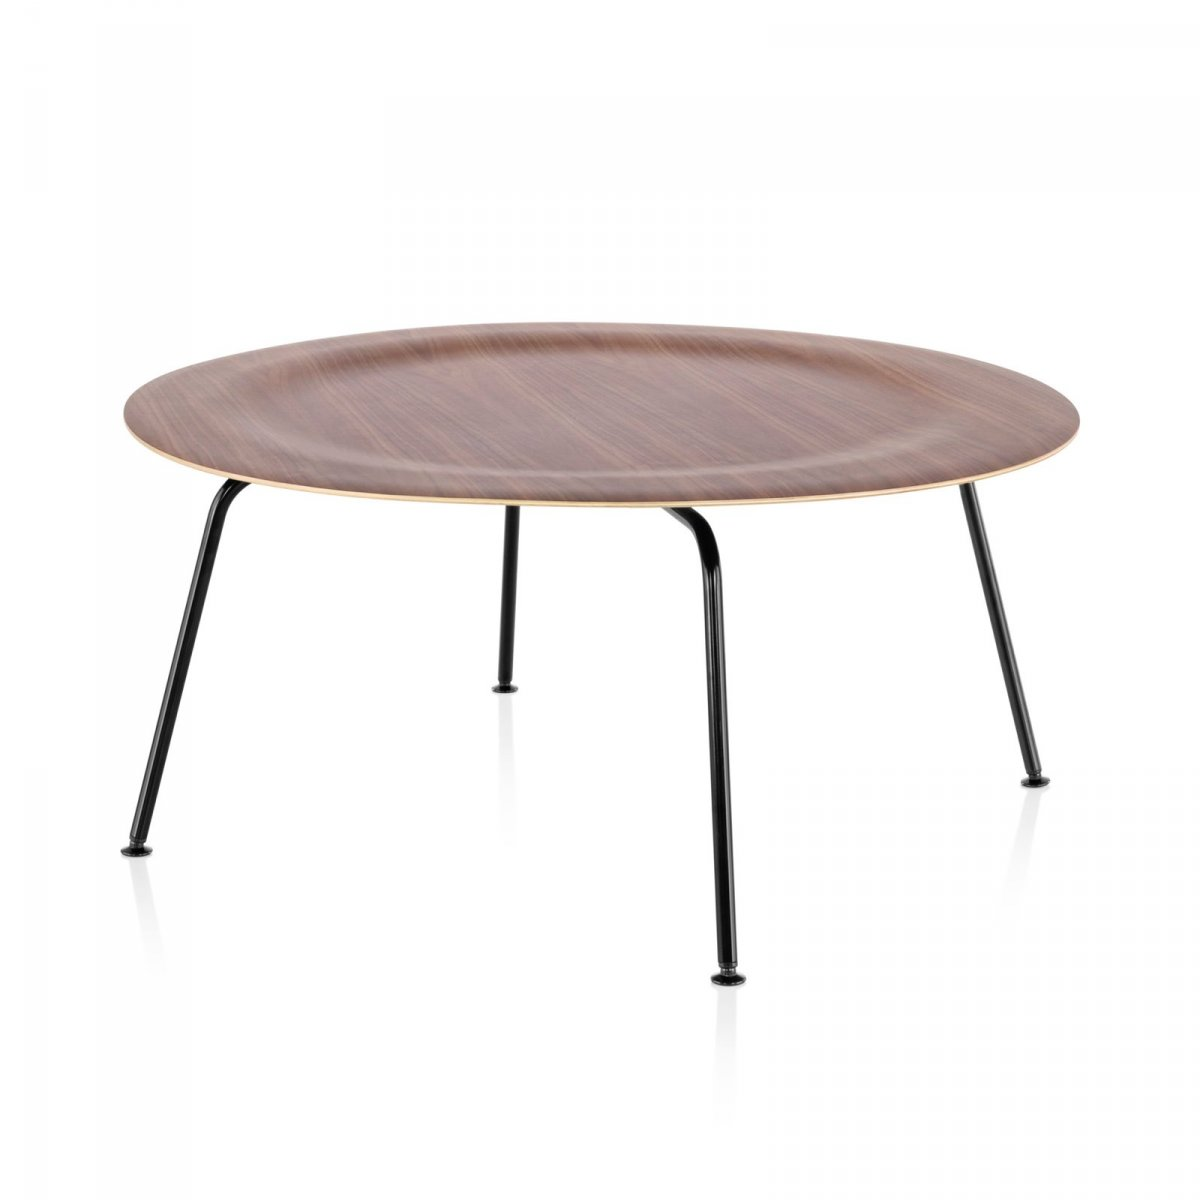 Eames Molded Plywood Coffee Table Metal Base, walnut top, black base.